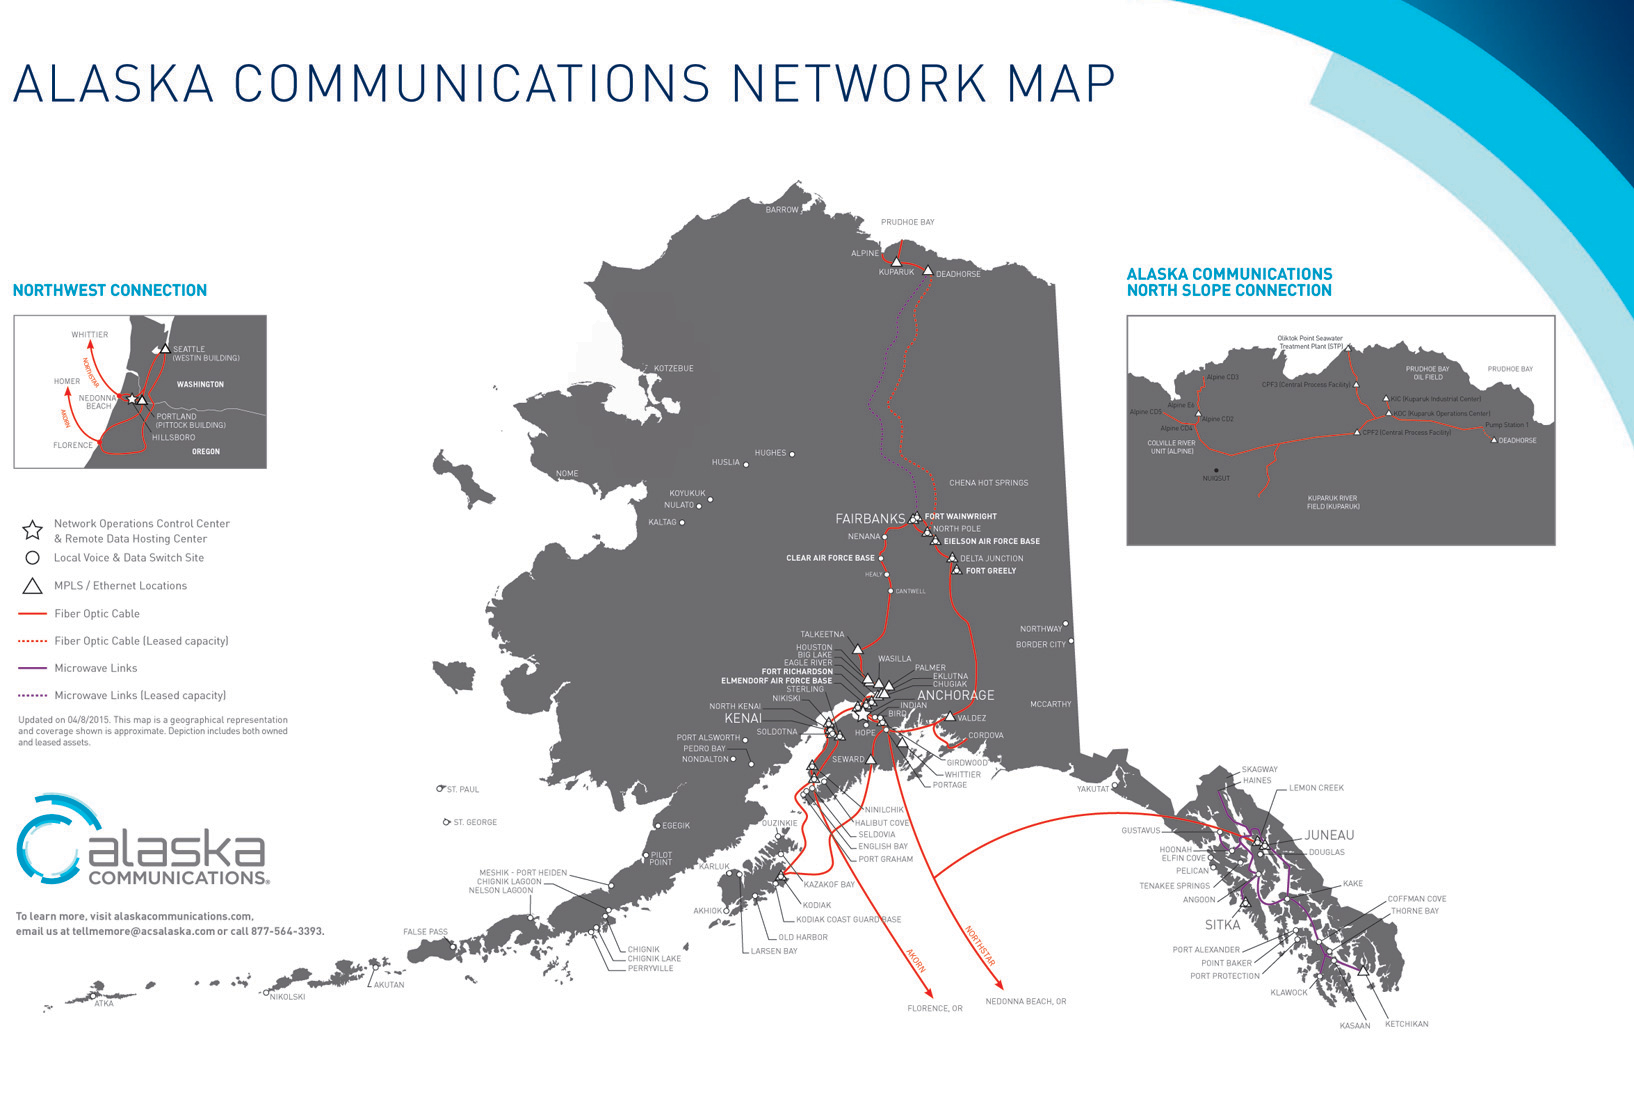 verizon alaska coverage map with Acs Quintillion Operate North Slope Fiber  Work on 147 Cities To Have Verizon 4G LTE Coverage By Year S End furthermore Cell Coverage In Yosemite National Park also What Are Coverage Maps Us Carriers in addition Sprint Vs Verizon Coverage Map moreover Gci And T Mobile Strike Lte Roaming Deal.